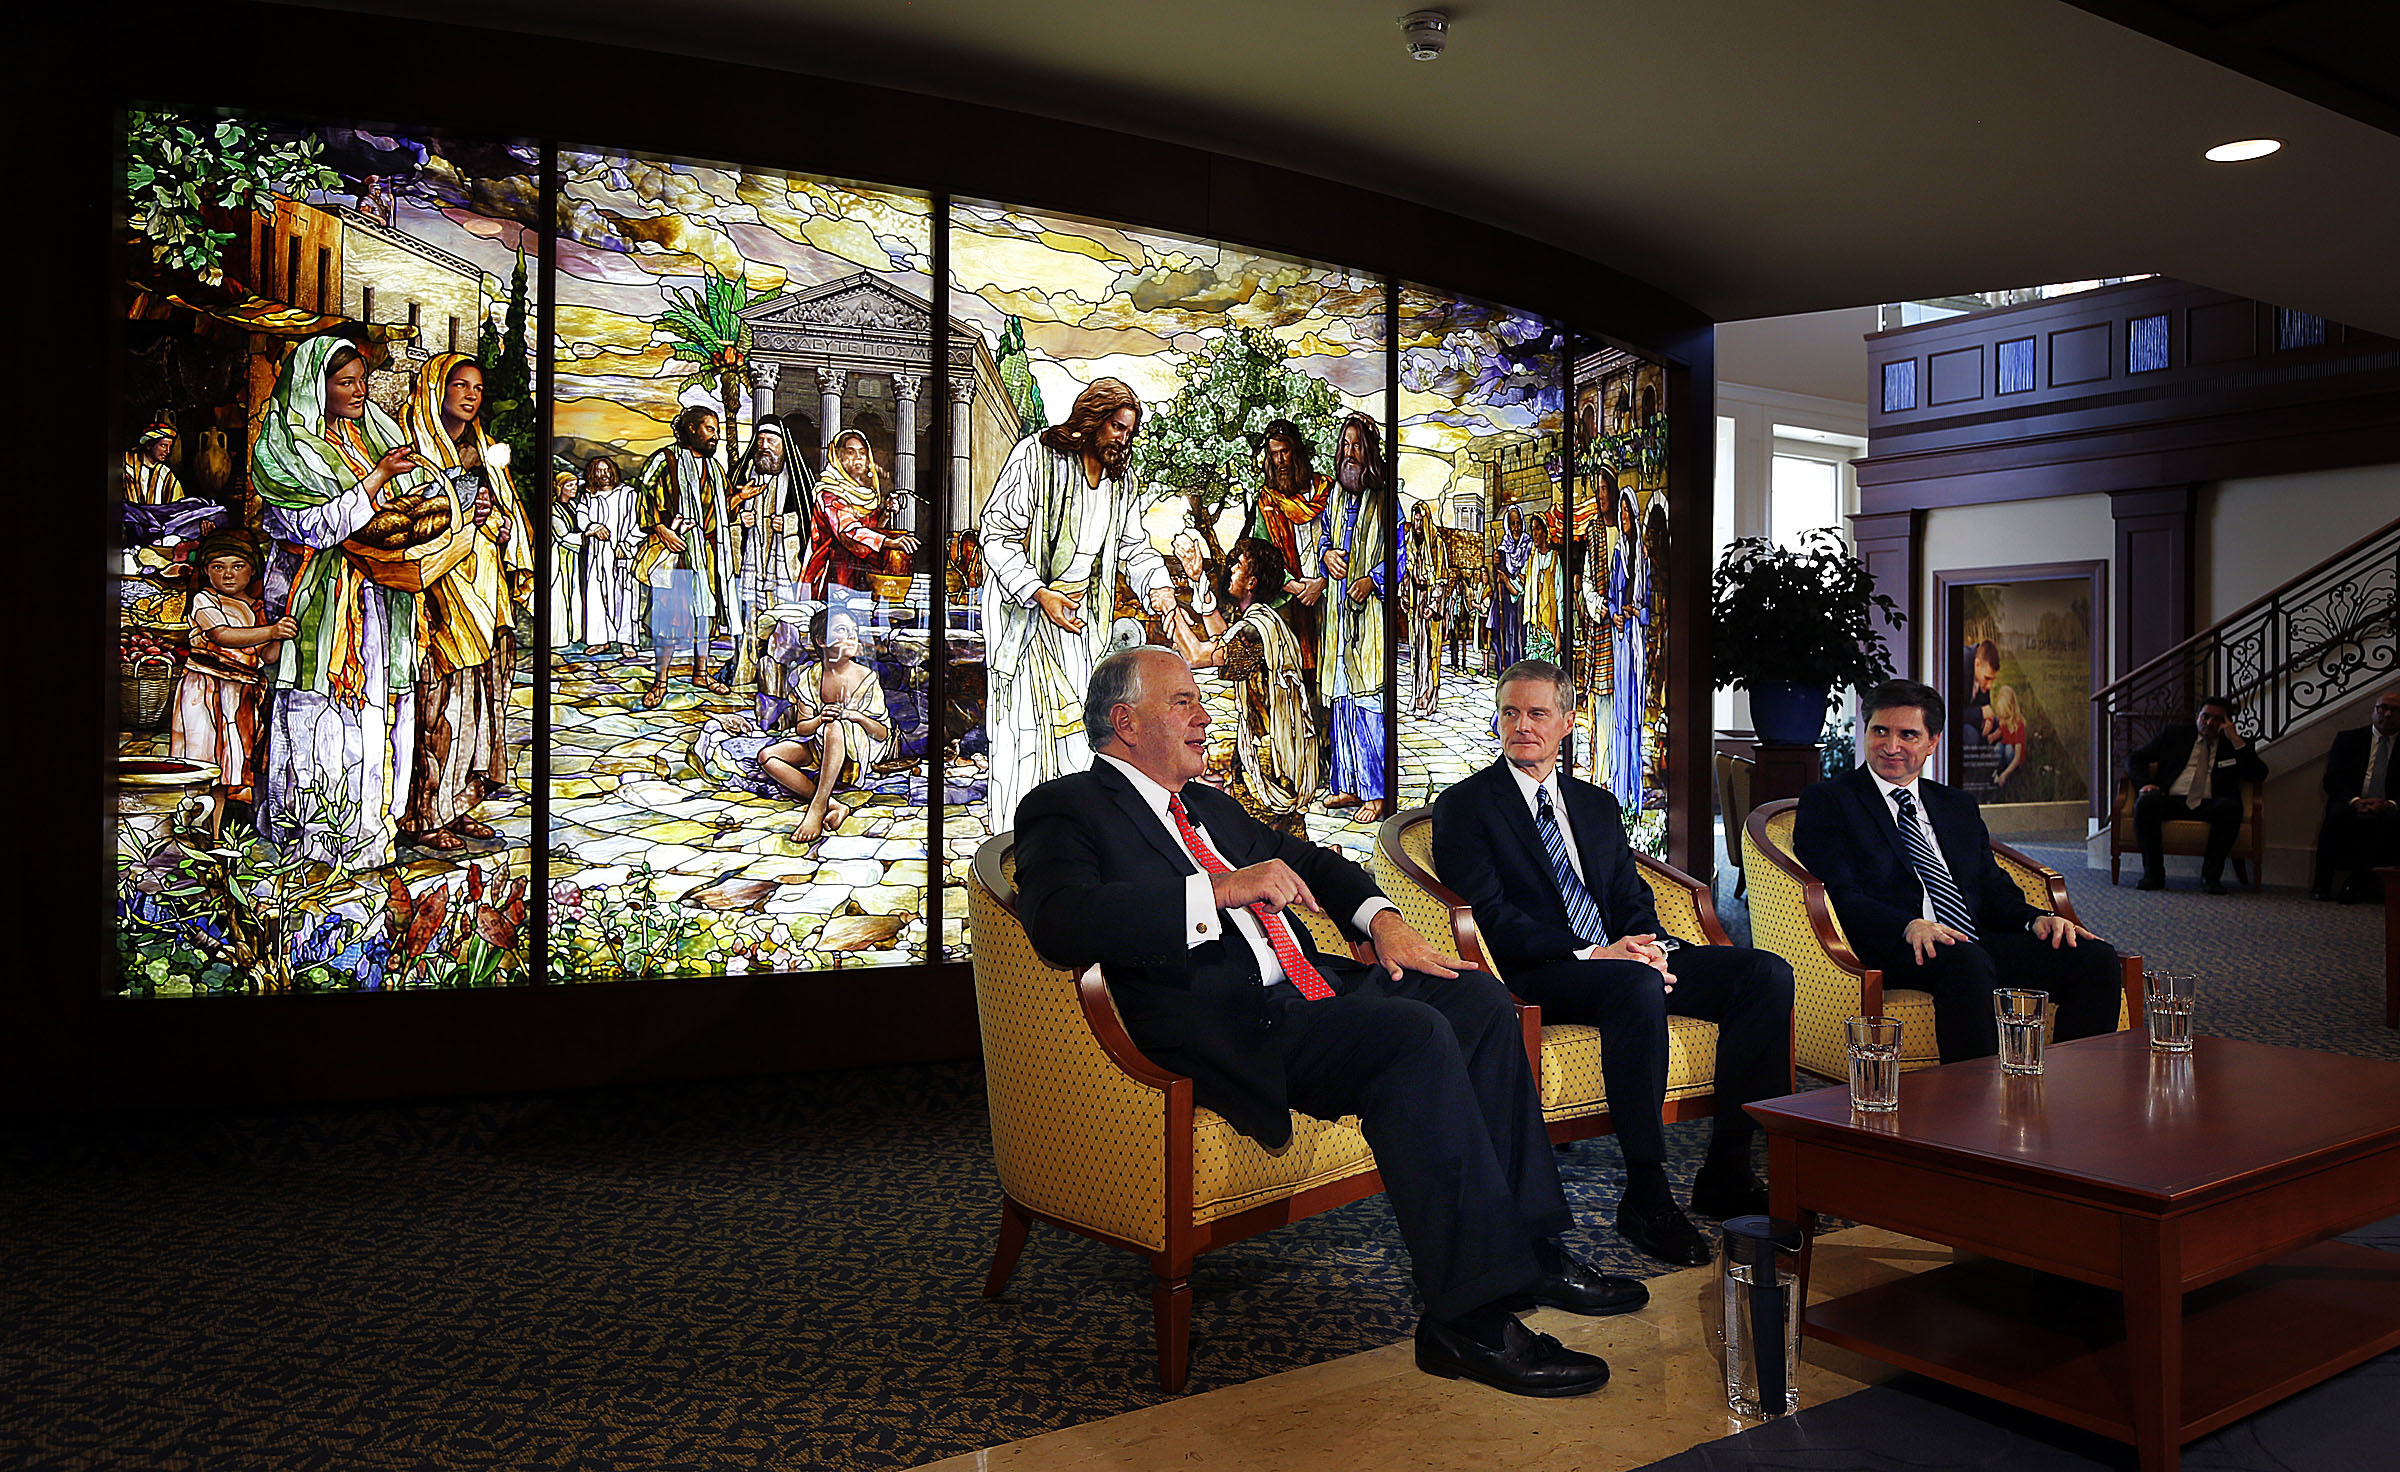 Elder Ronald A. Rasband, left, and Elder David A. Bednar of the Quorum of the Twelve Apostles, along with Elder Massimo De Feo, General Authority Seventy, participate in a press conference in the Rome Temple Visitors' Center of The Church of Jesus Christ of Latter-day Saints on Monday, Jan. 14, 2019.